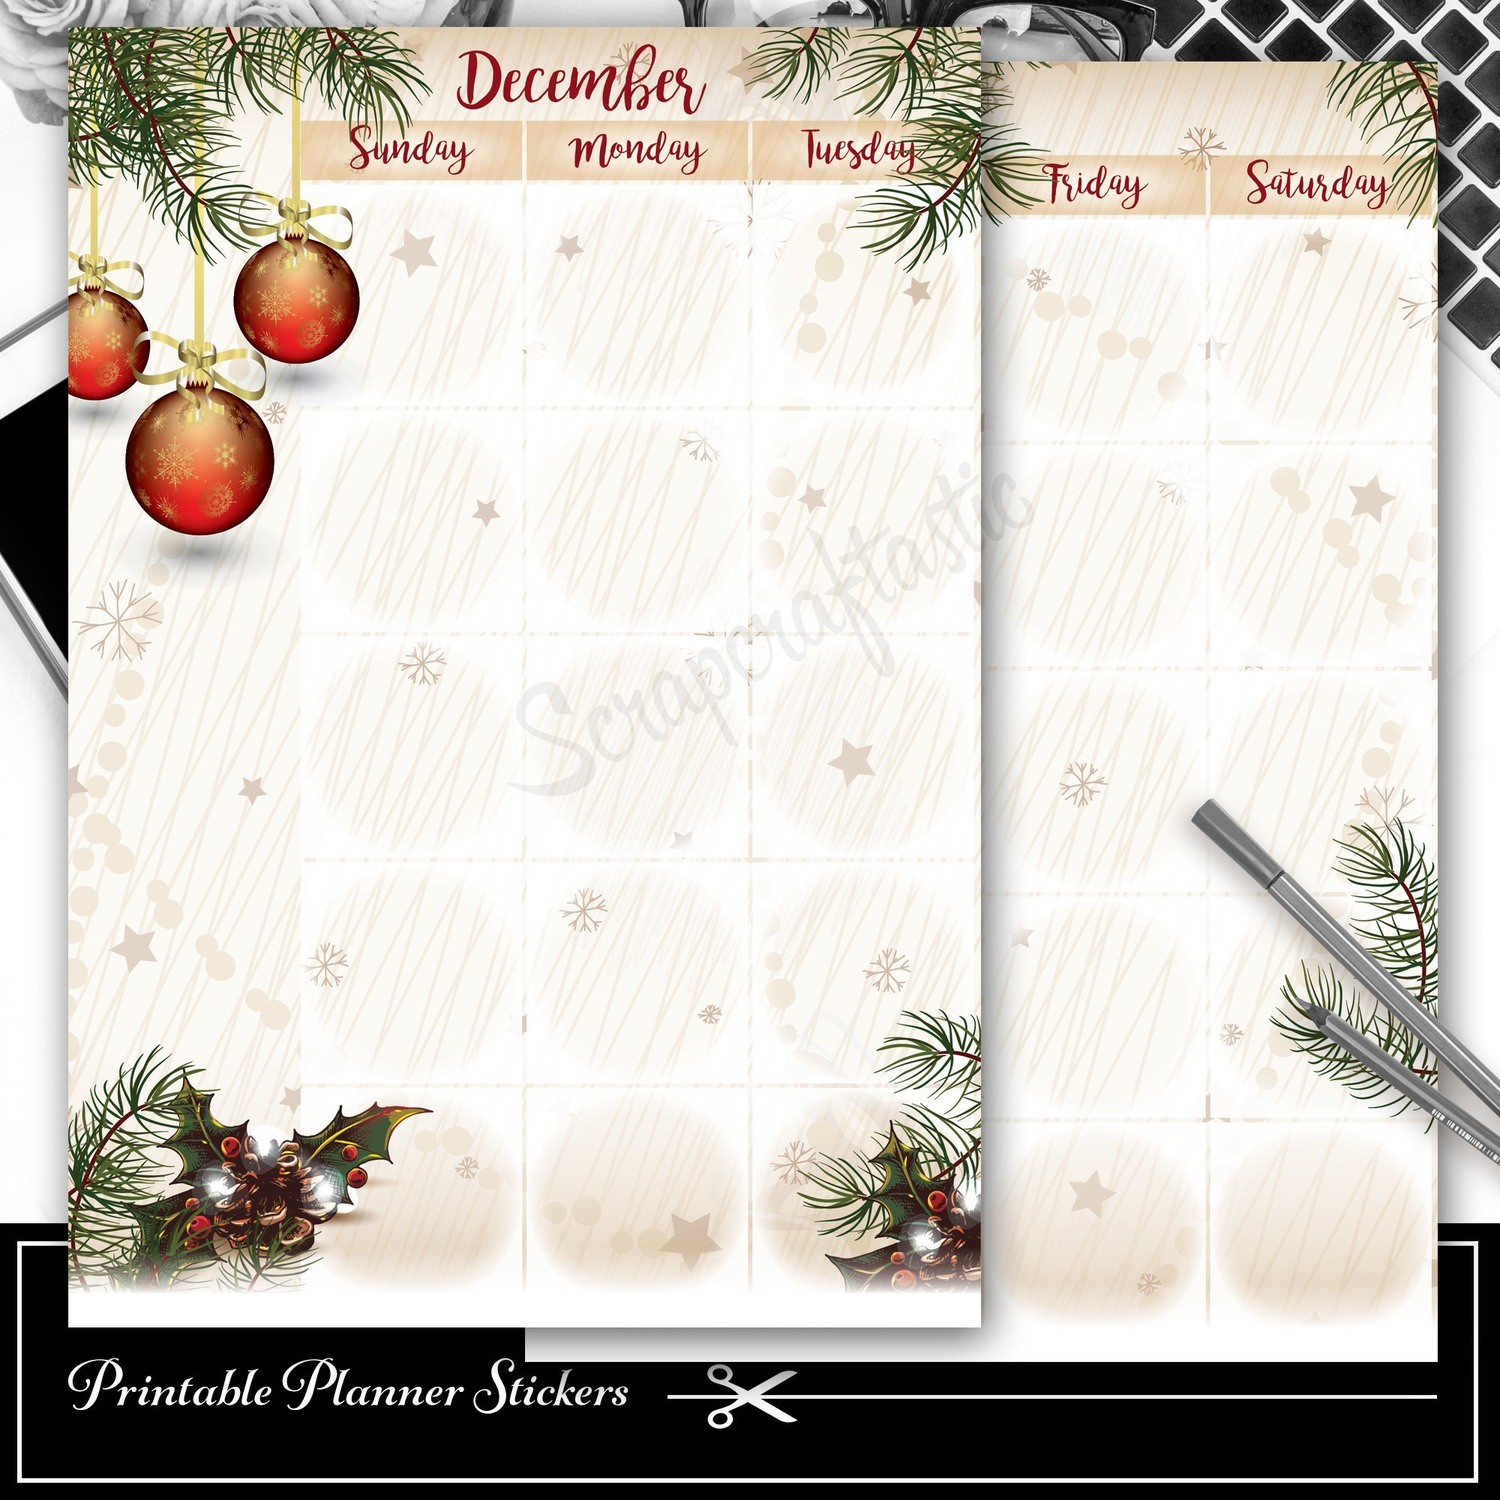 CLASSIC DISC - December Monthly Planner Spread Printable Planner Sticker Overlay for classic size Mambi Happy Planner